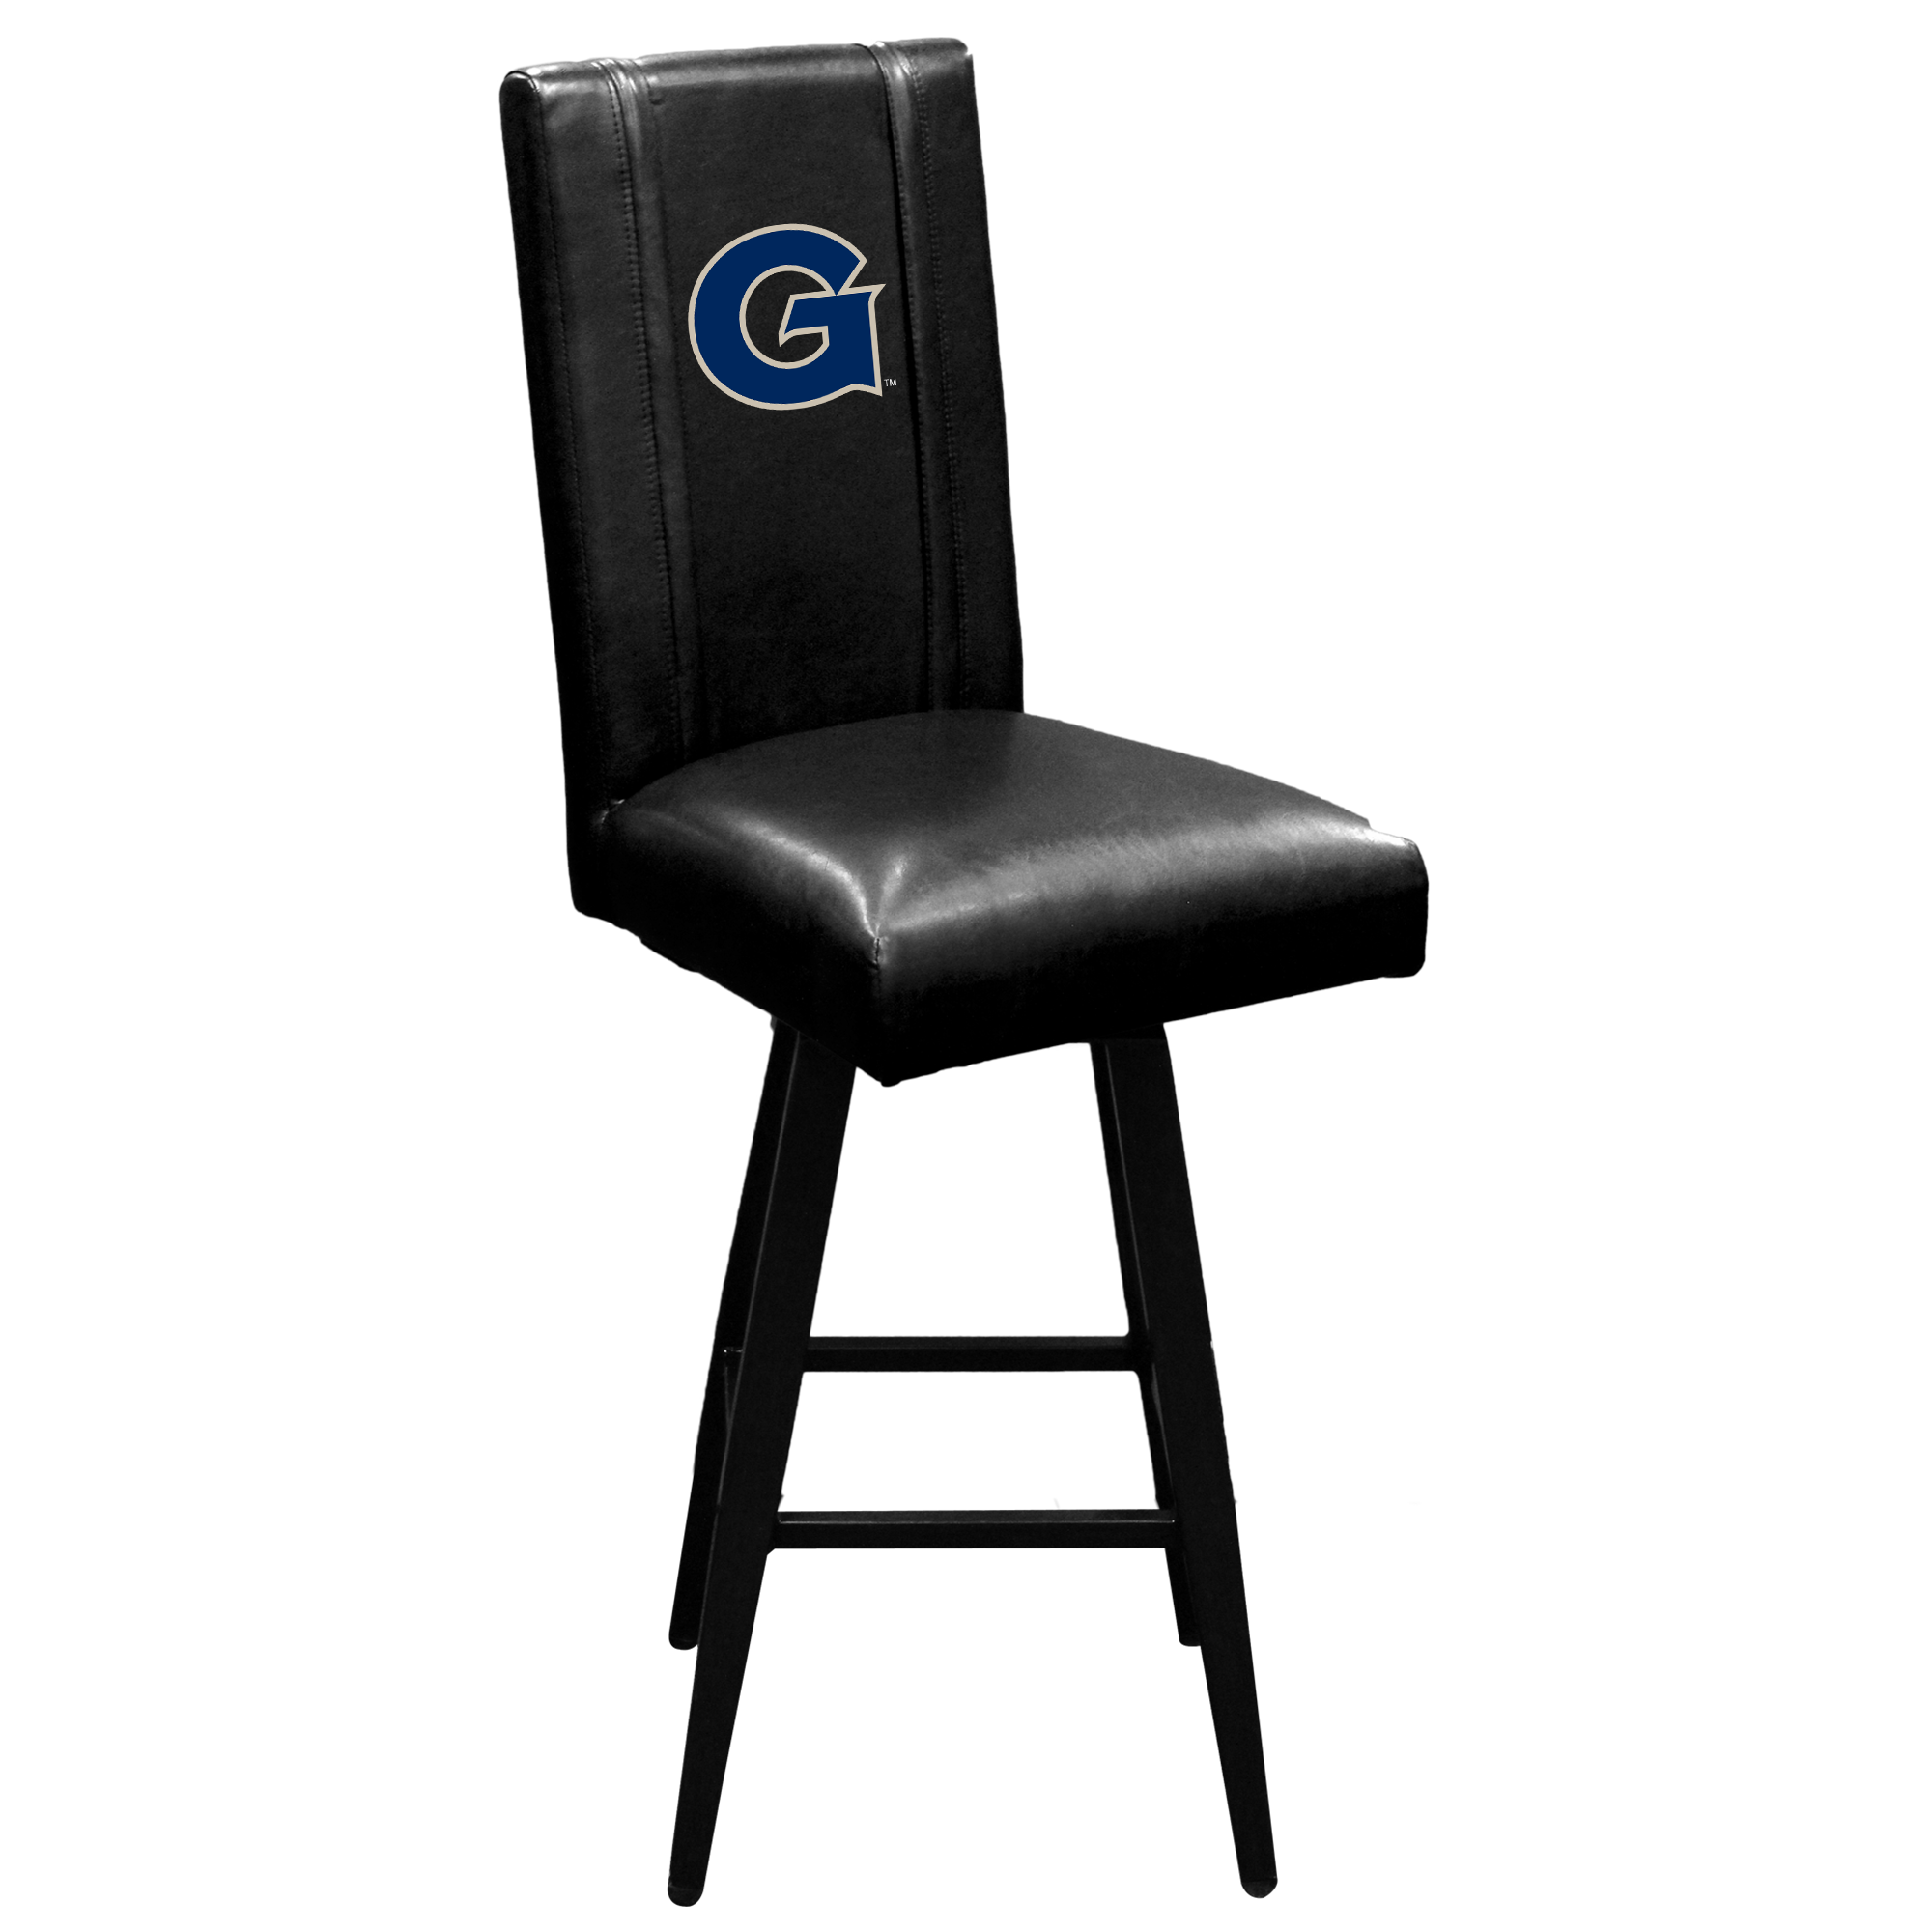 Swivel Bar Stool 2000 with Georgetown Hoyas Primary